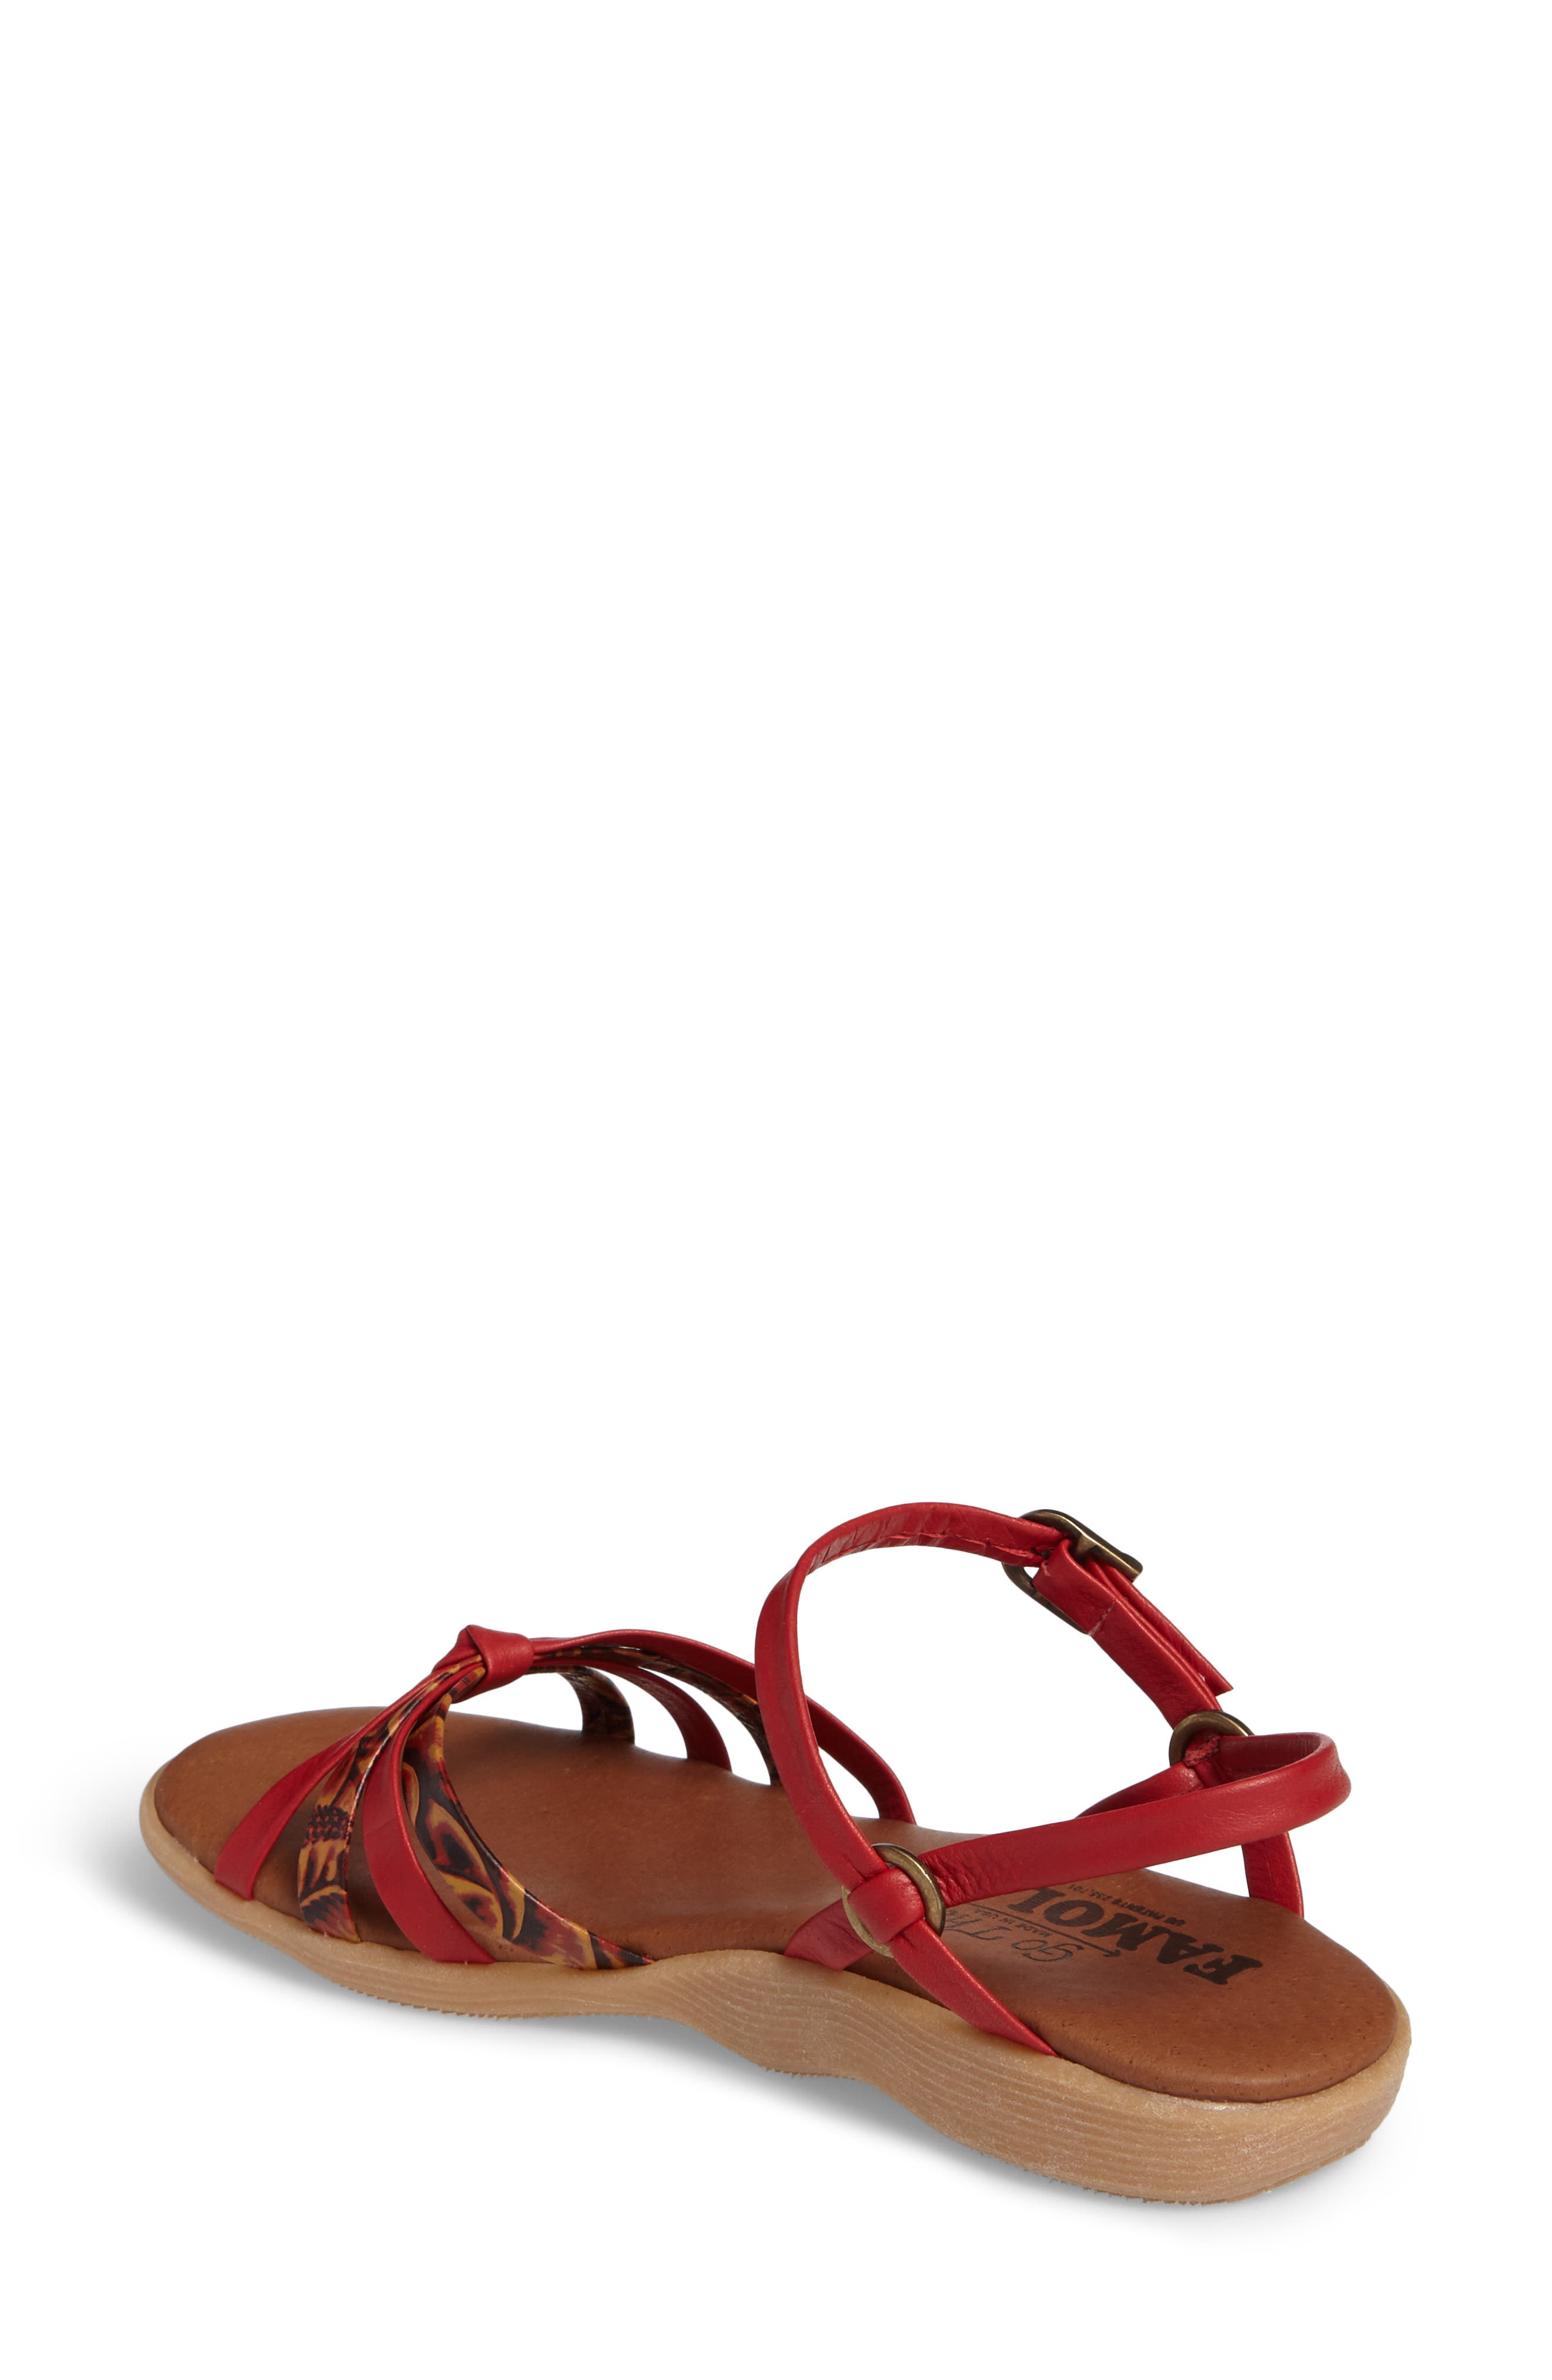 Strap Music Knotted Sandal,                             Alternate thumbnail 2, color,                             MULTI CORAL LEATHER